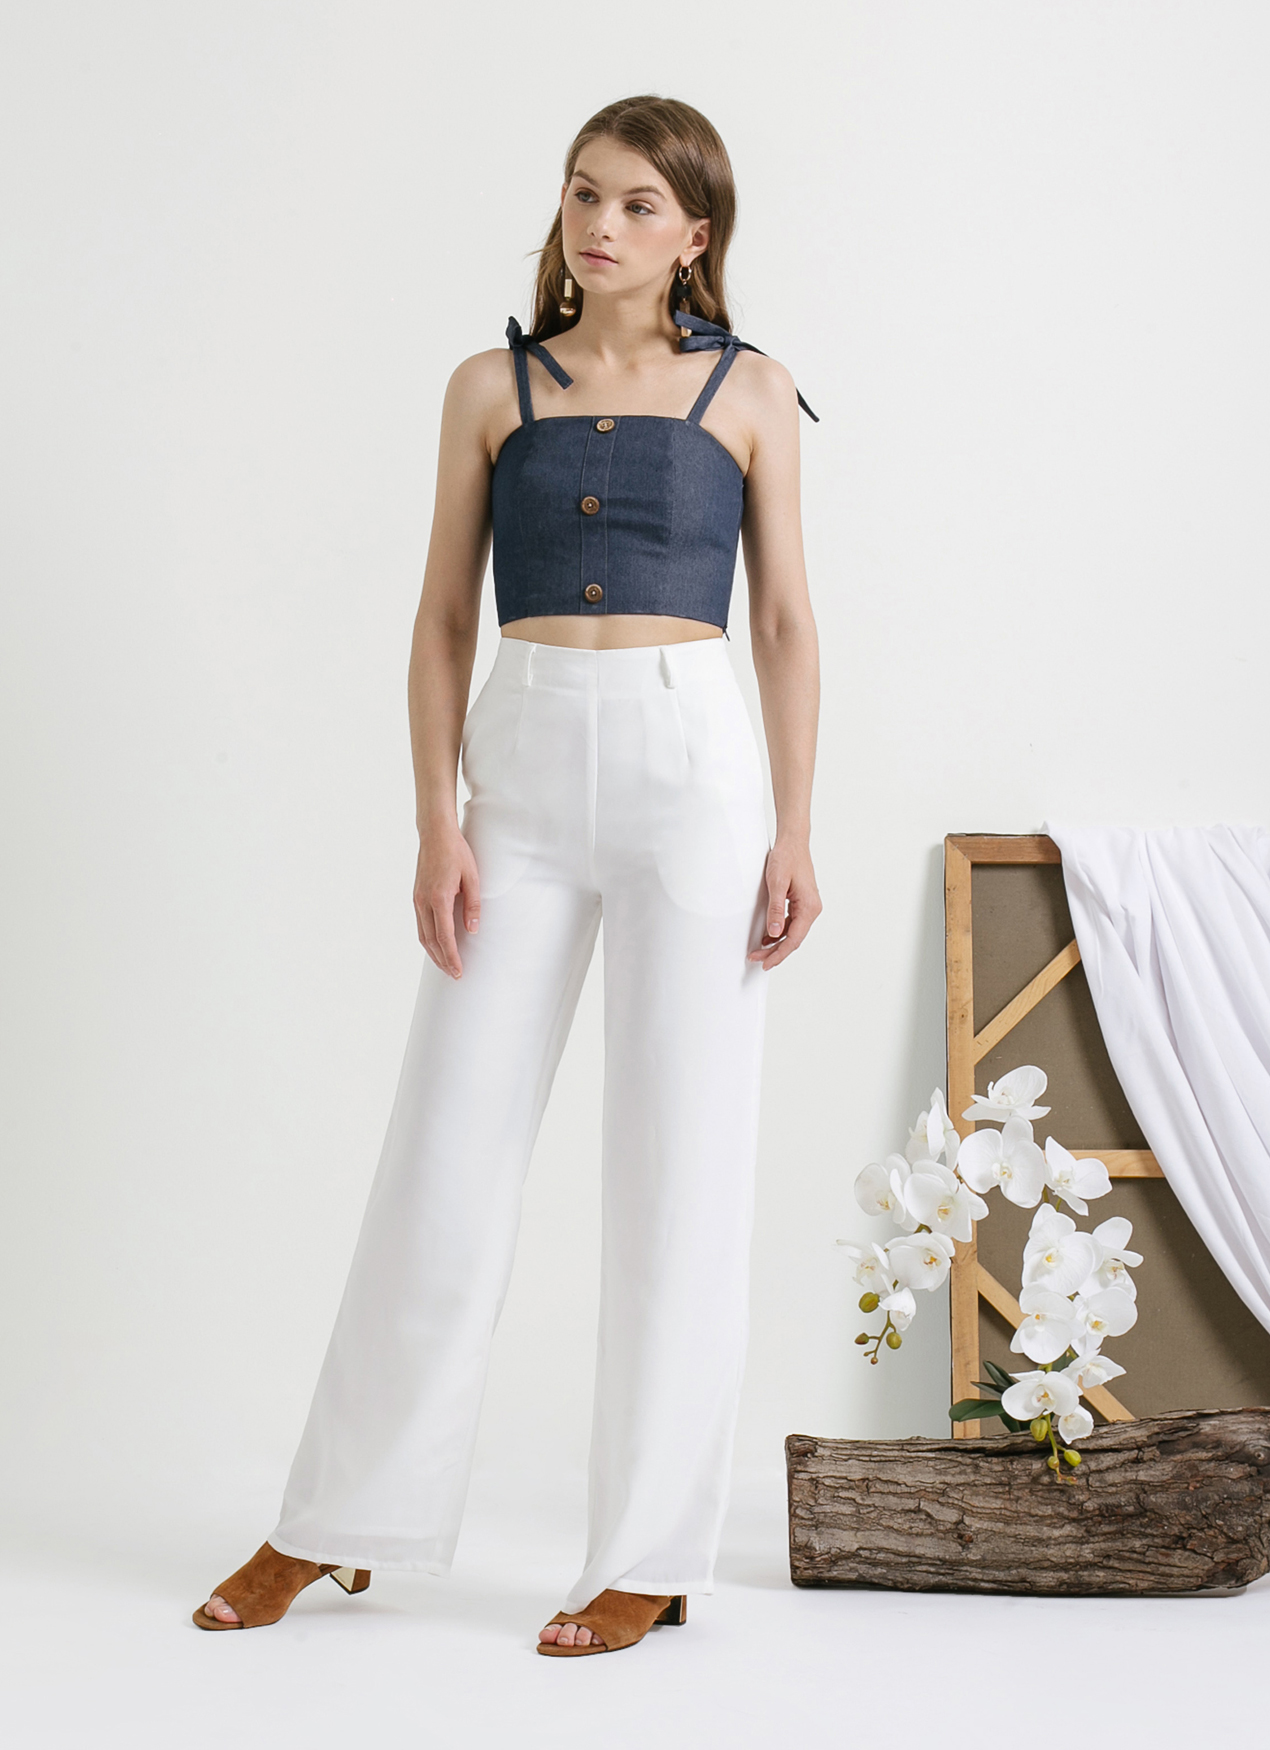 CLOTH INC Blue Button Denim Bralette Top